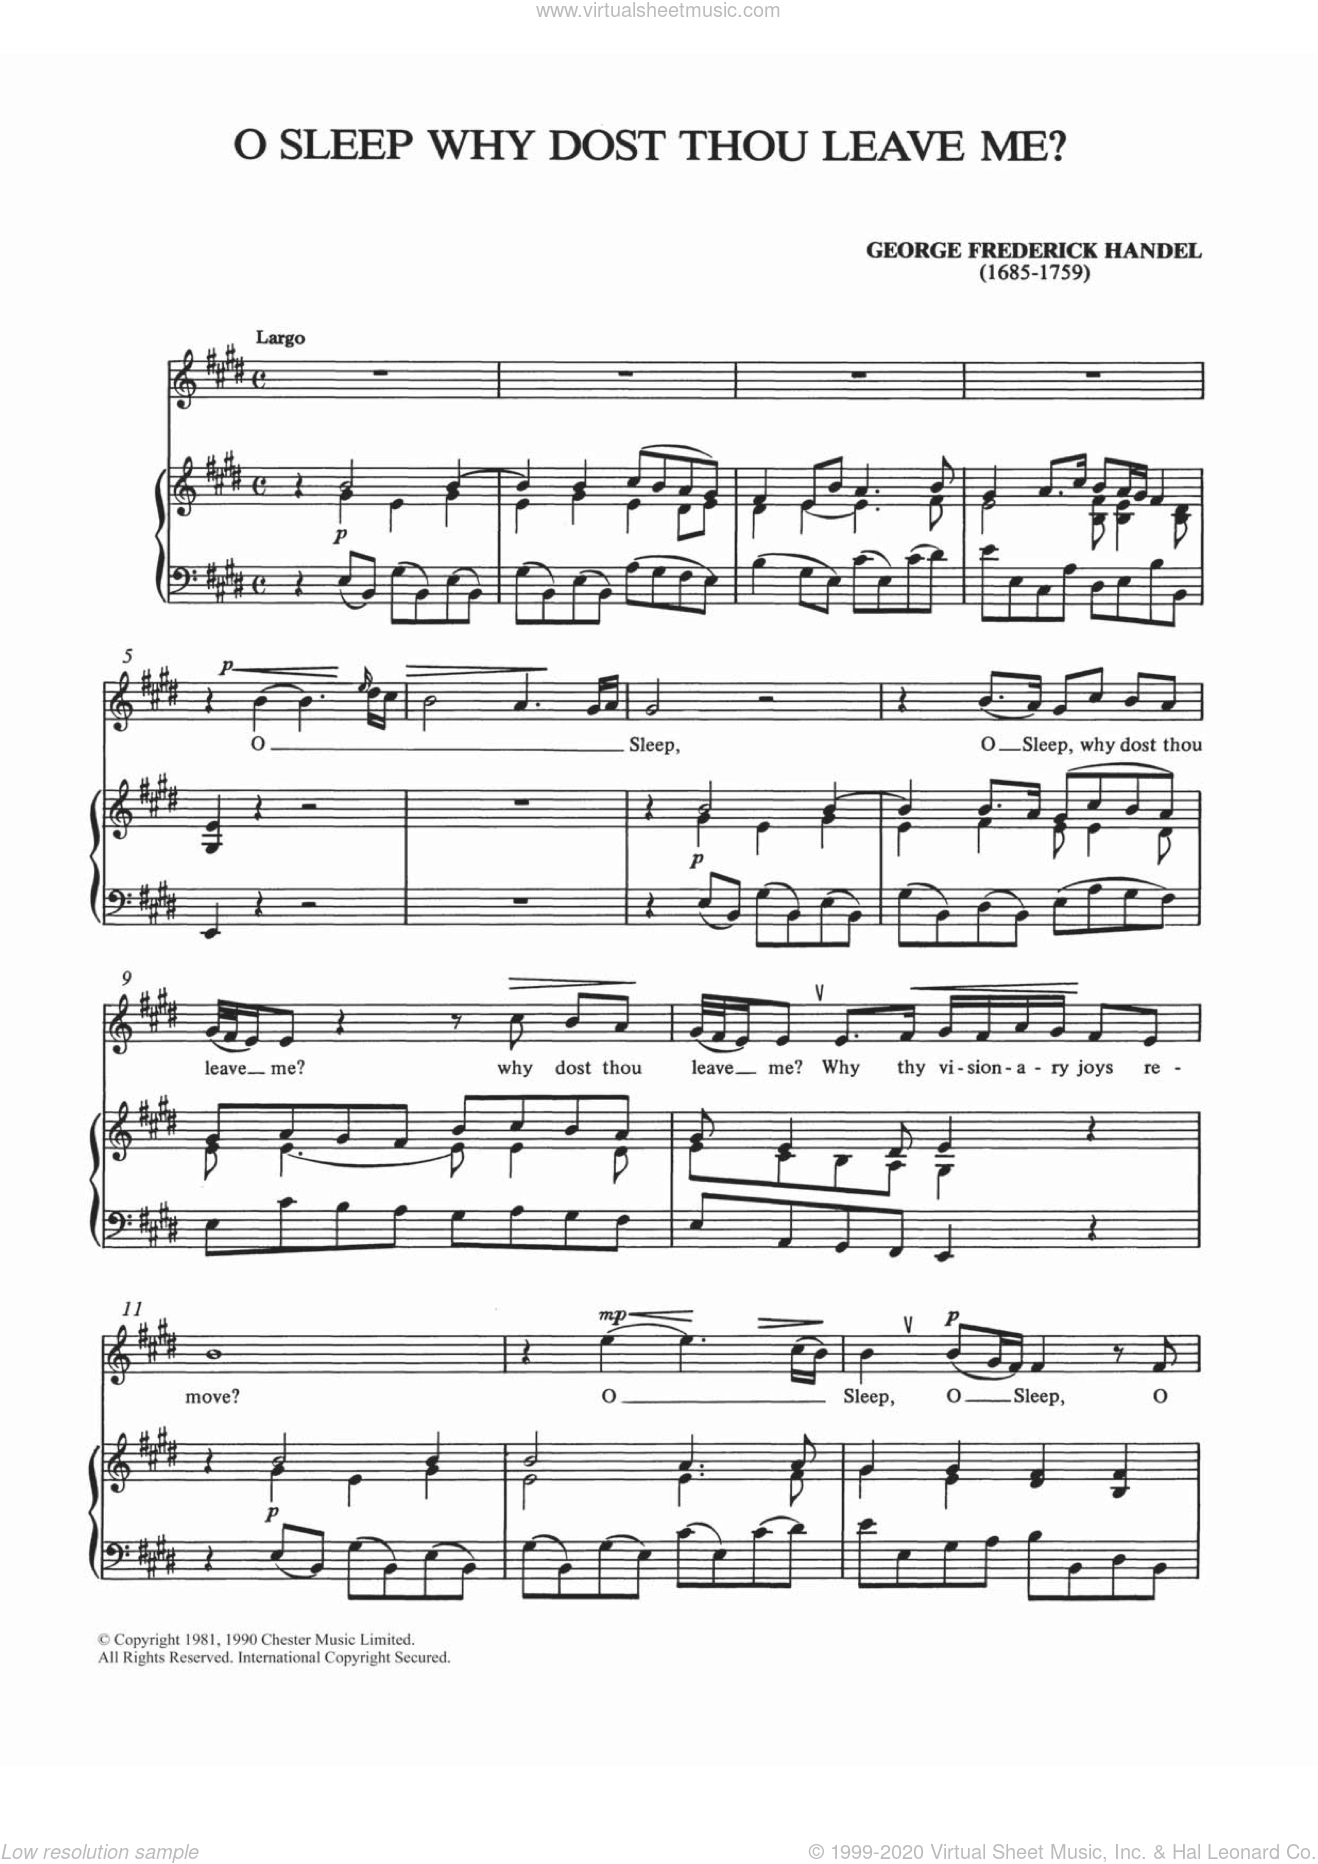 O Sleep Why Dost Thou Leave Me? sheet music for voice and piano by George Frideric Handel. Score Image Preview.